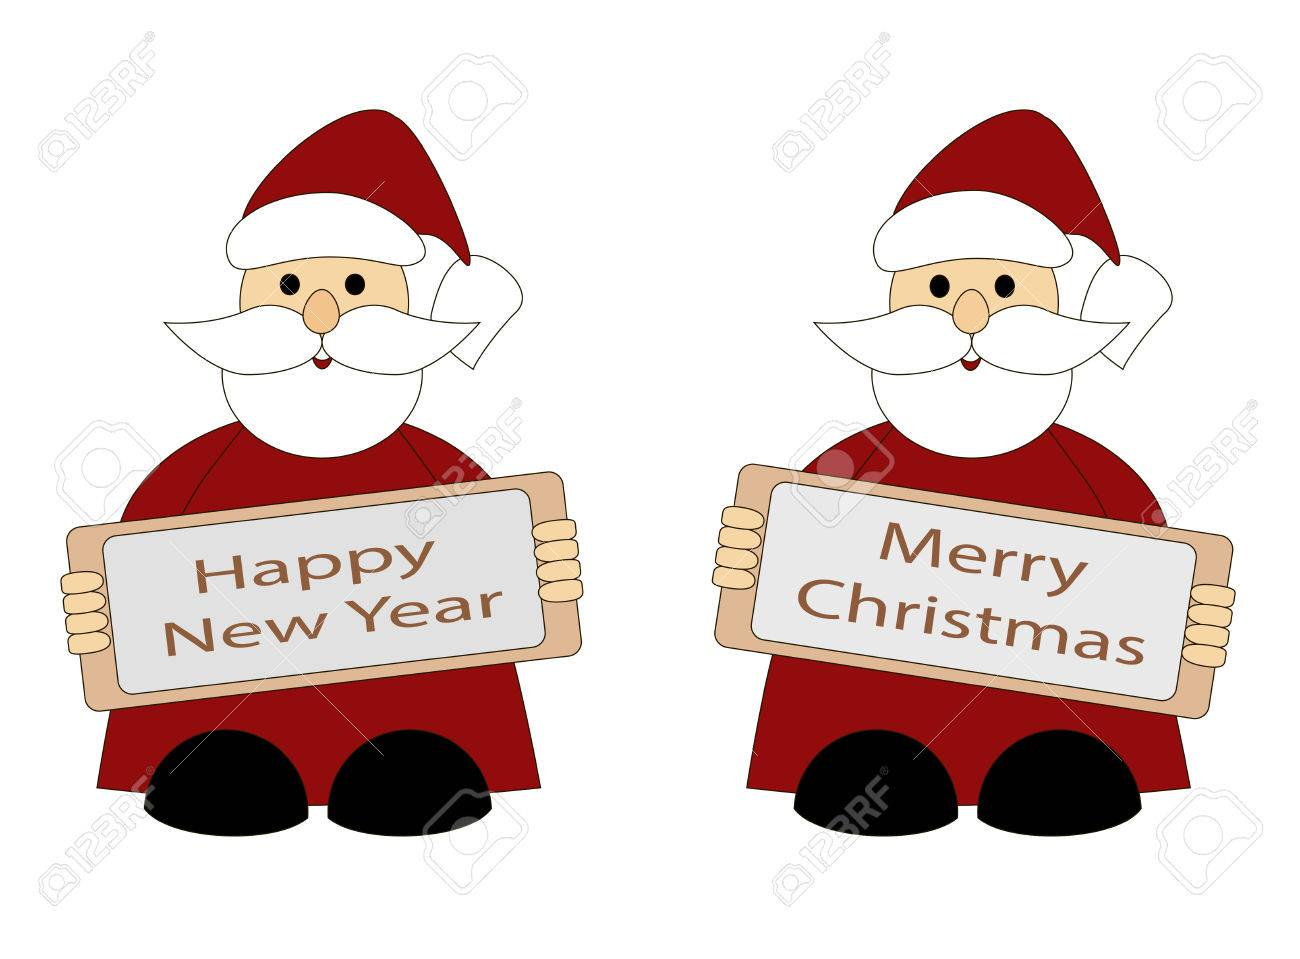 Santa Claus Greeting Card Happy New Year And Merry Christmas